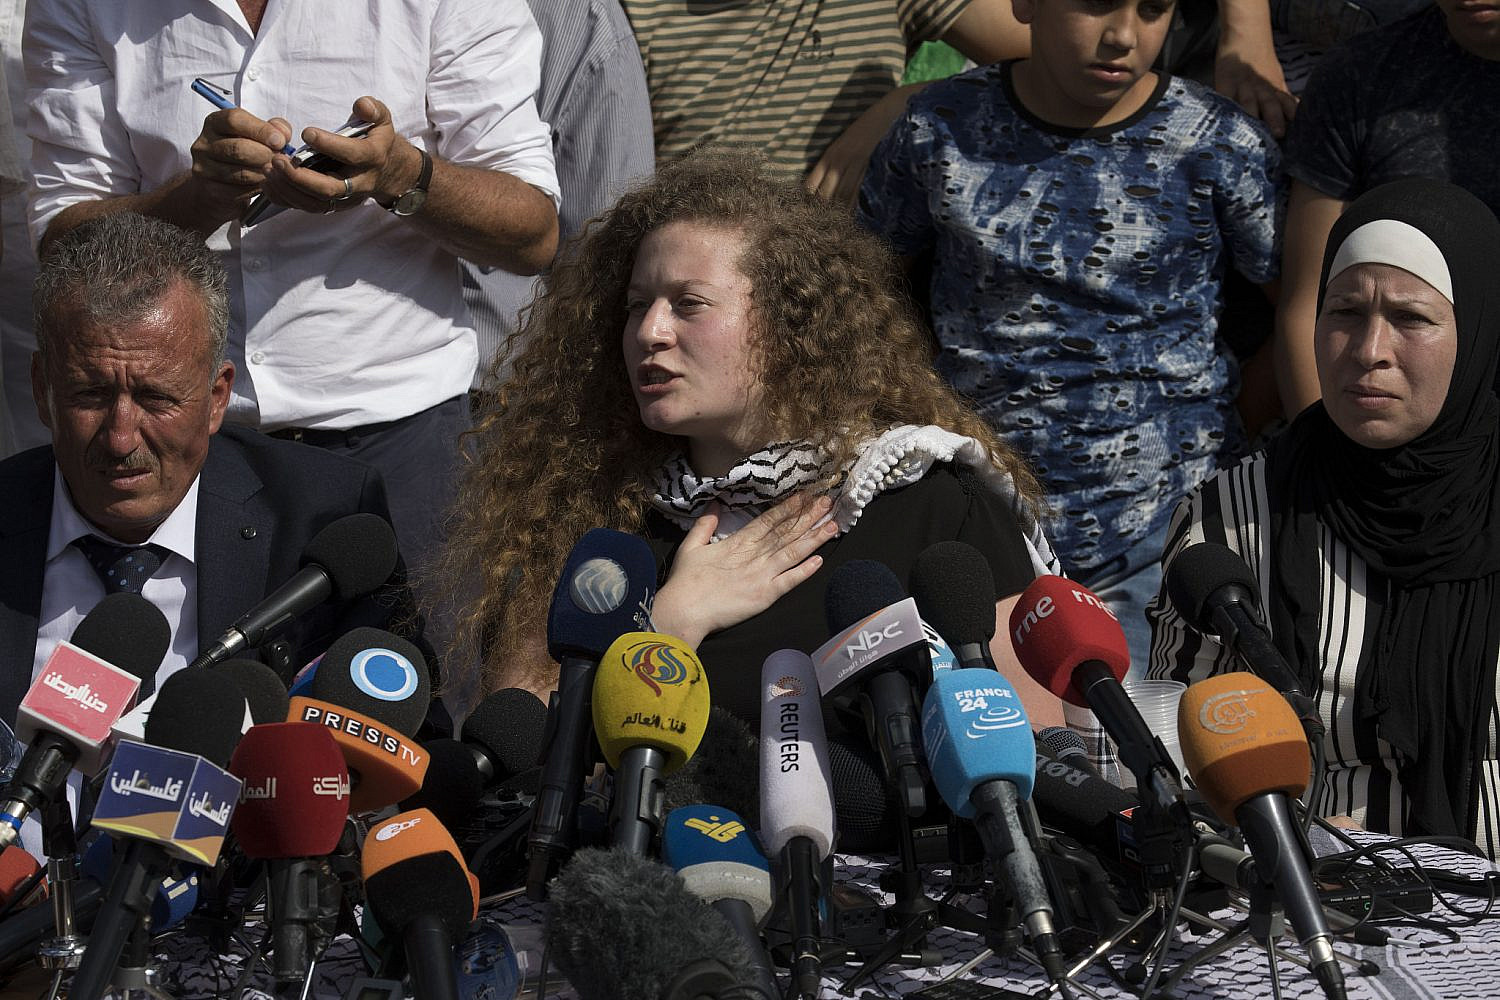 Ahed Tamimi with her family speaking to the press in Nabi Saleh, the West Bank, after her release from Israeli prison, July 29, 2018. (Oren Ziv)